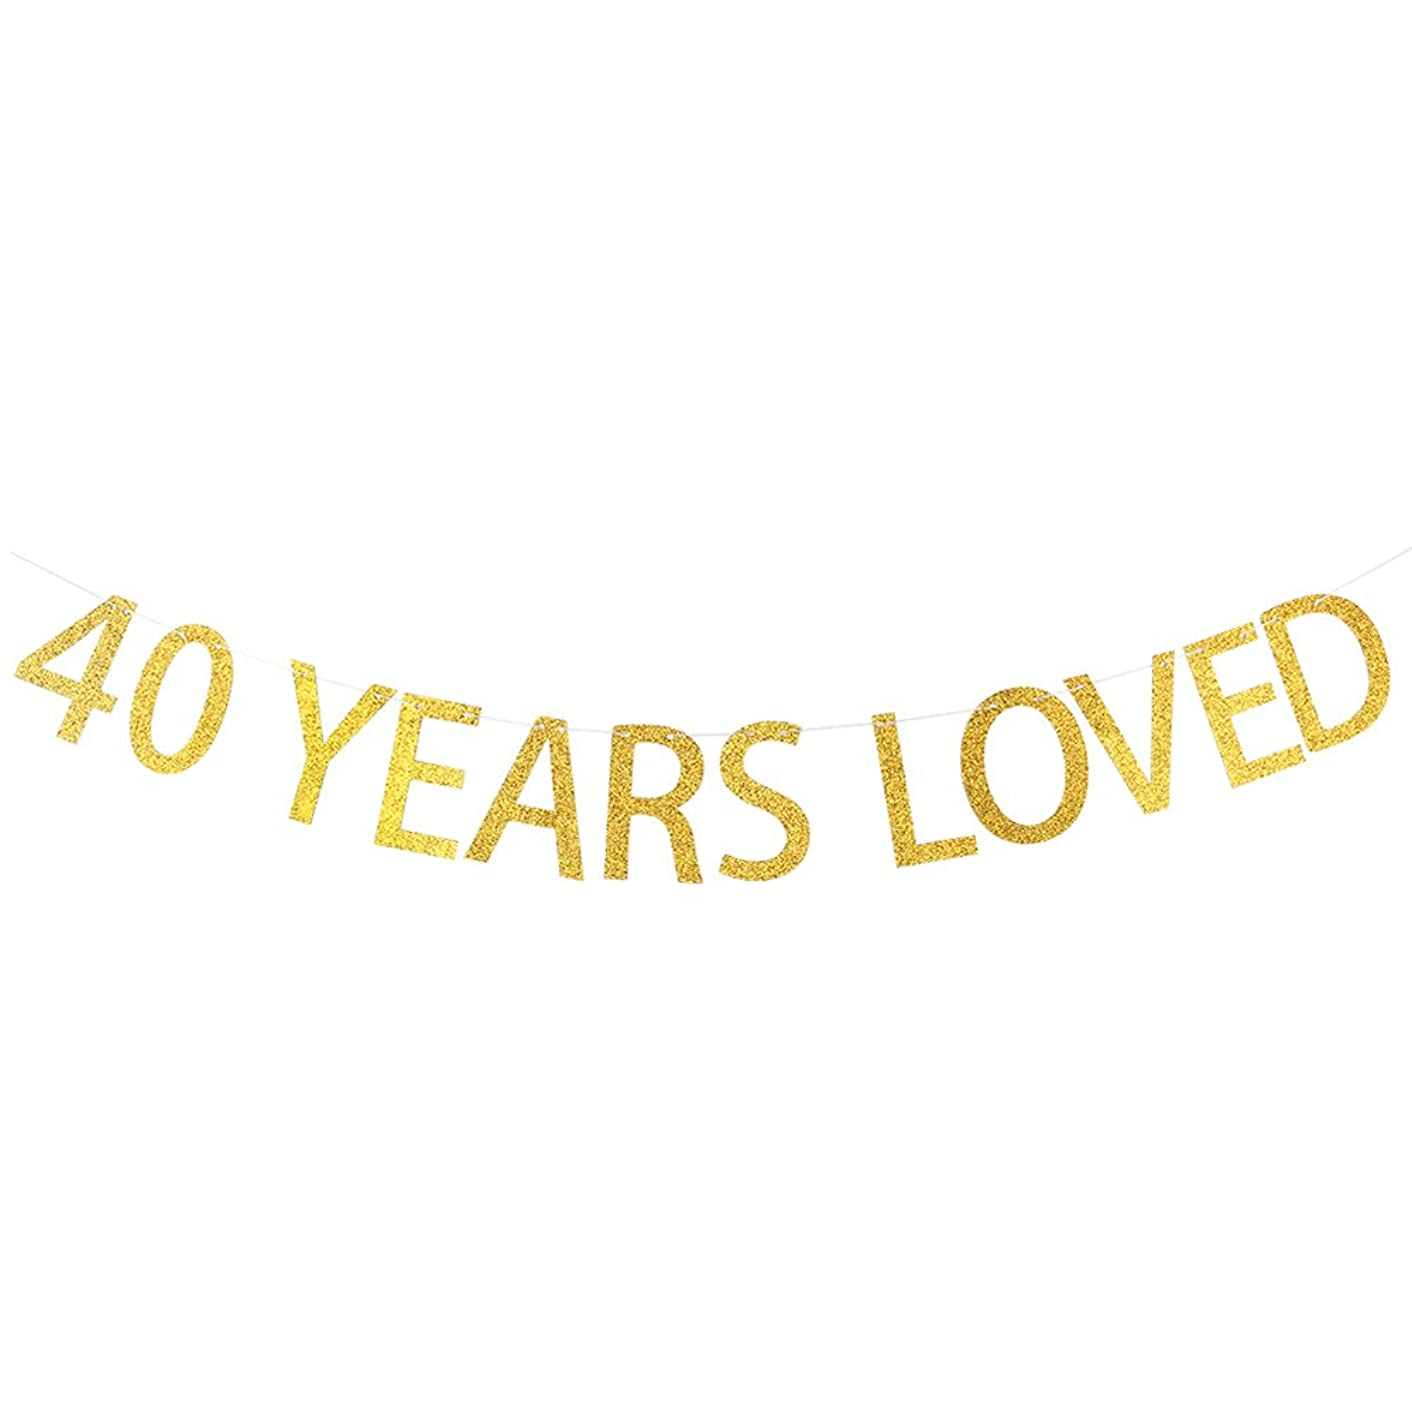 40 YEARS LOVED Gold Glitter Banner for 40th Birthday, Wedding Anniversary Party Bunting Photo Props Decorations